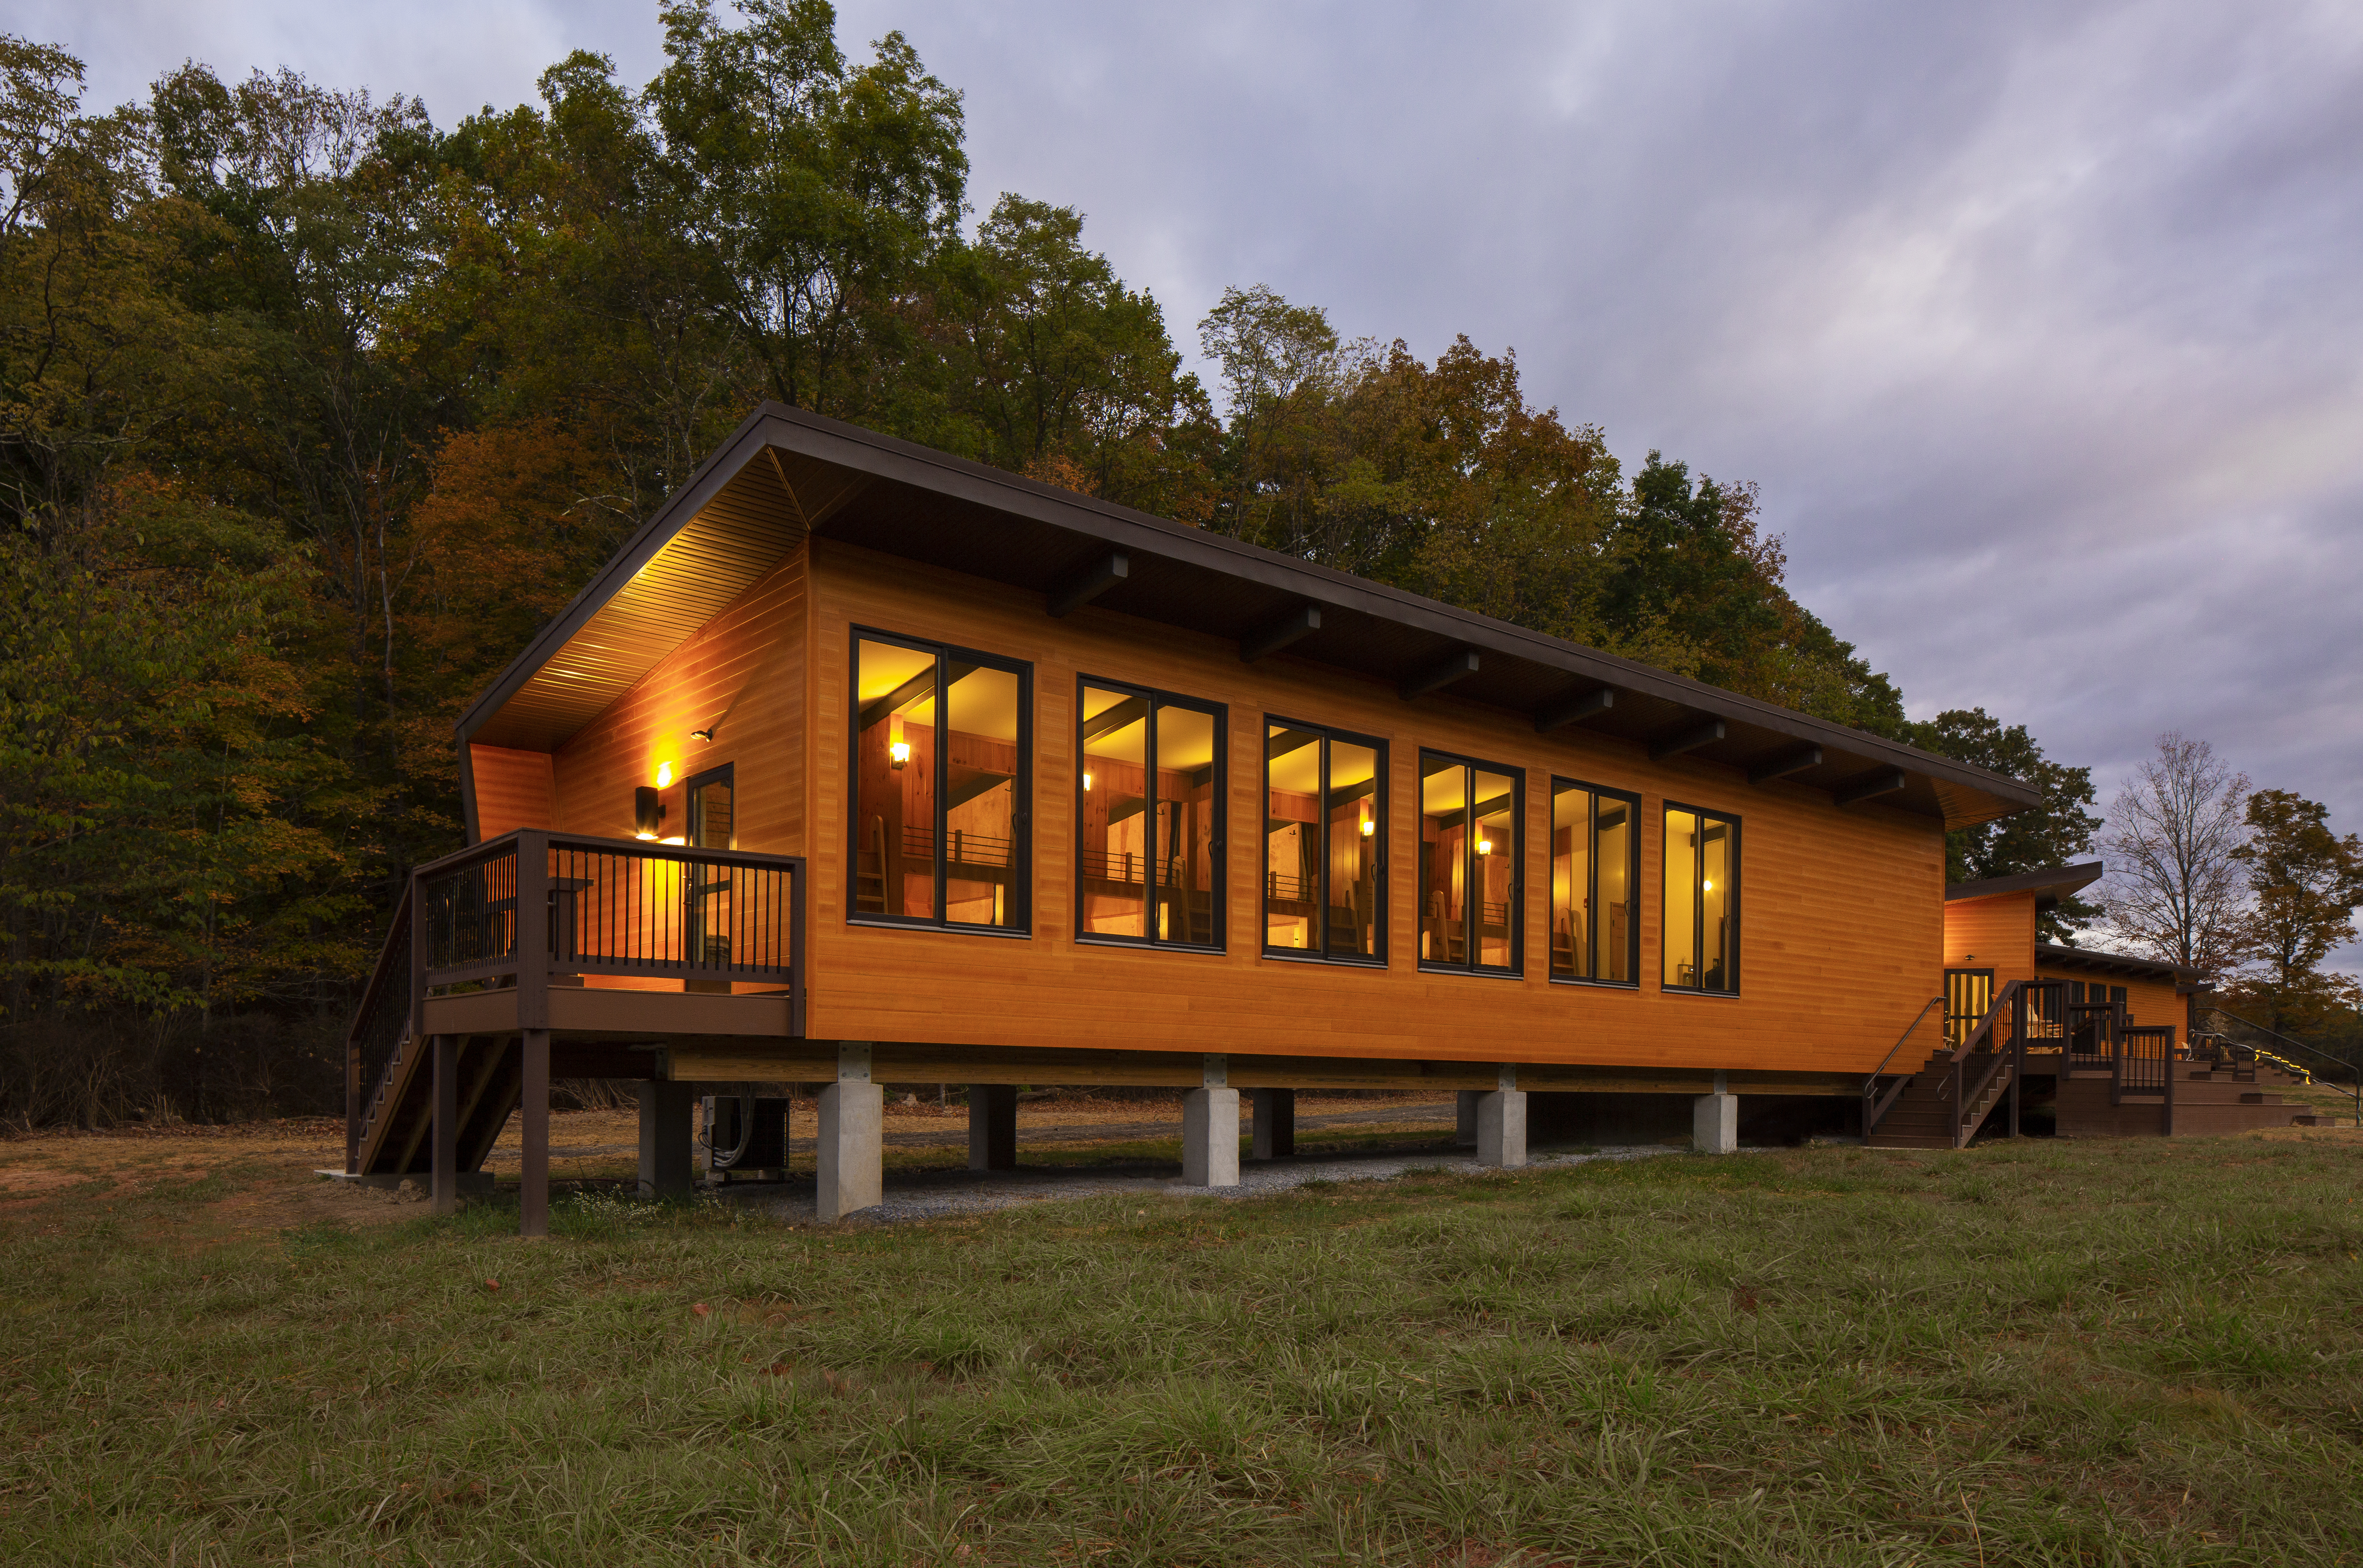 HENRY ADAMS provided the MEP engineering design for the new camp facility.